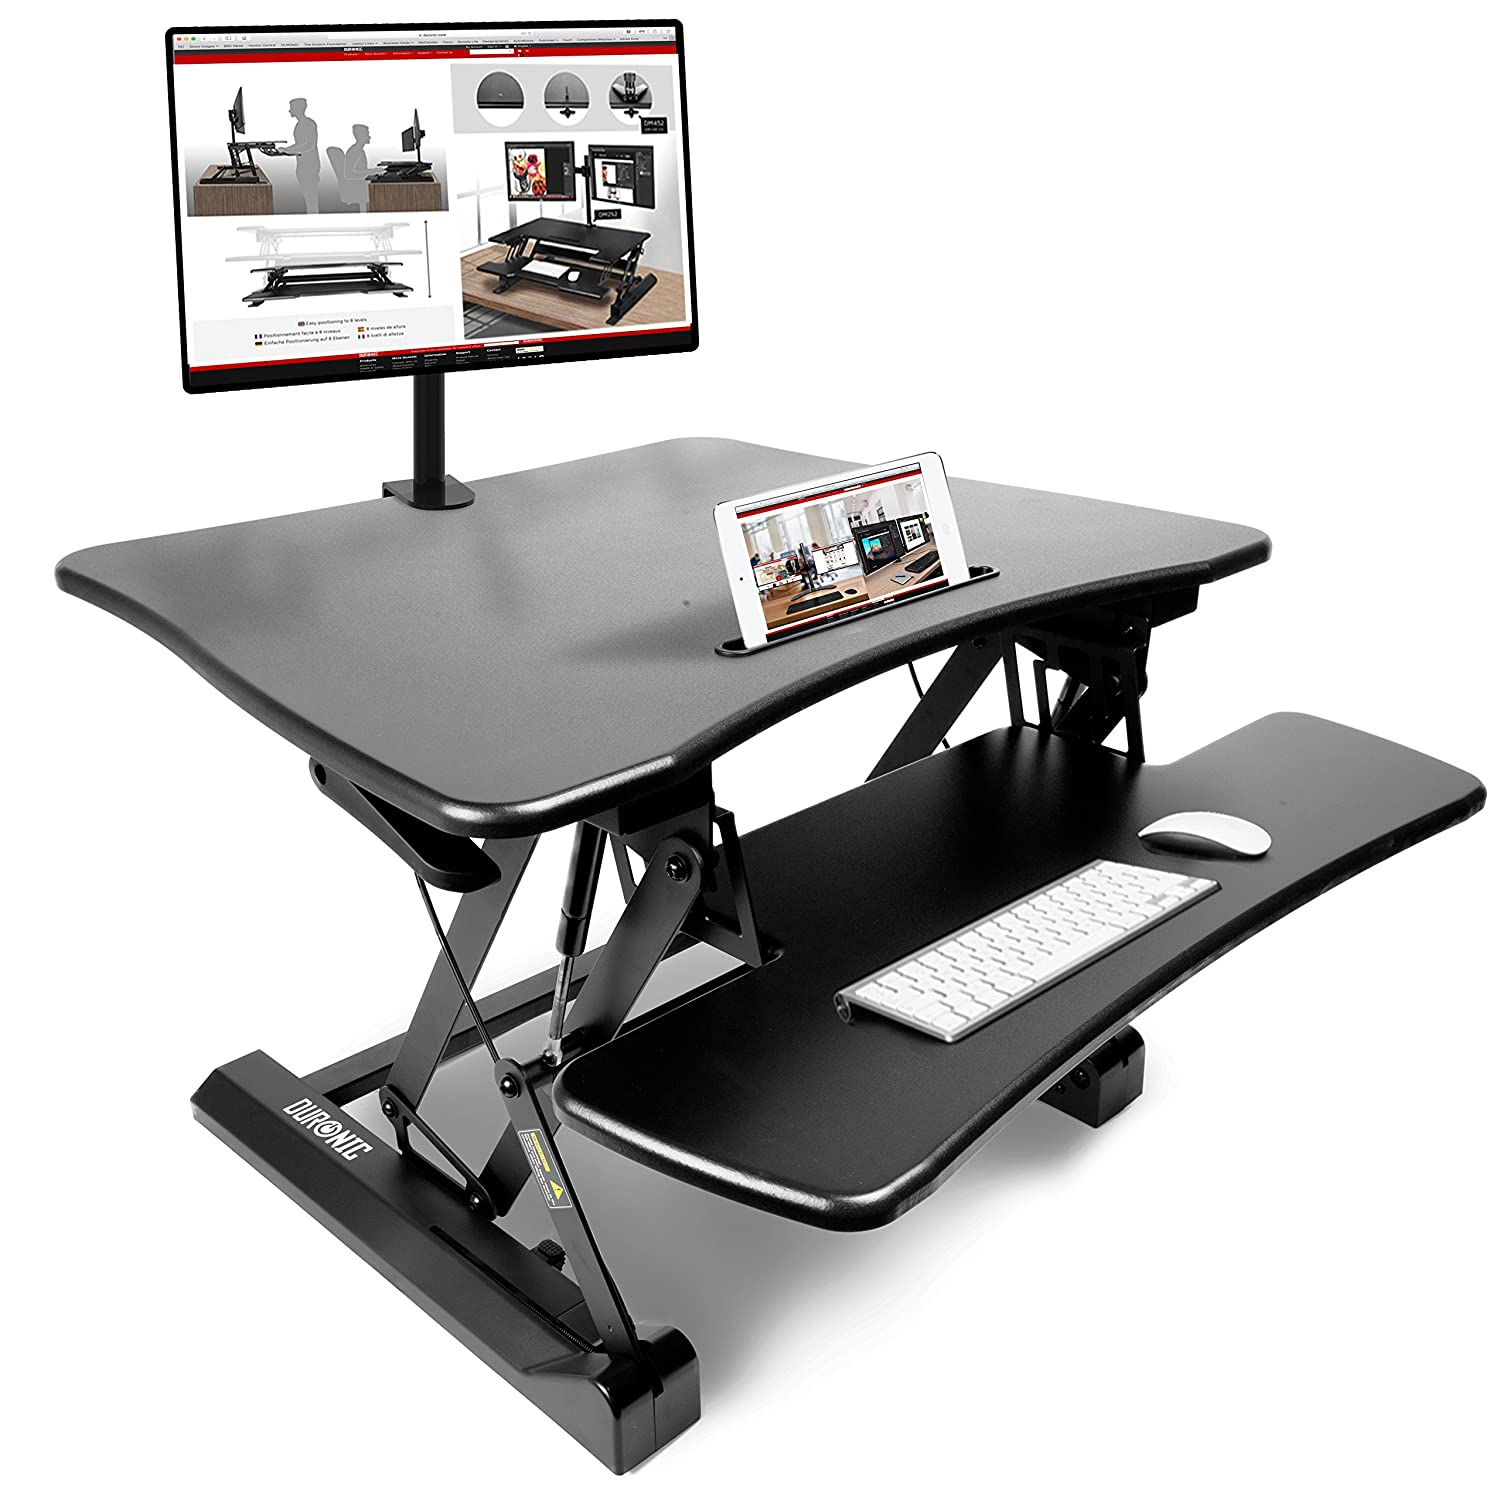 Duronic DM05D10 Sit Stand Desk PC Laptop Workstation Height Adjustable Table - Monitor and Keyboard Riser – Compatible Monitor Arm DM05-D10